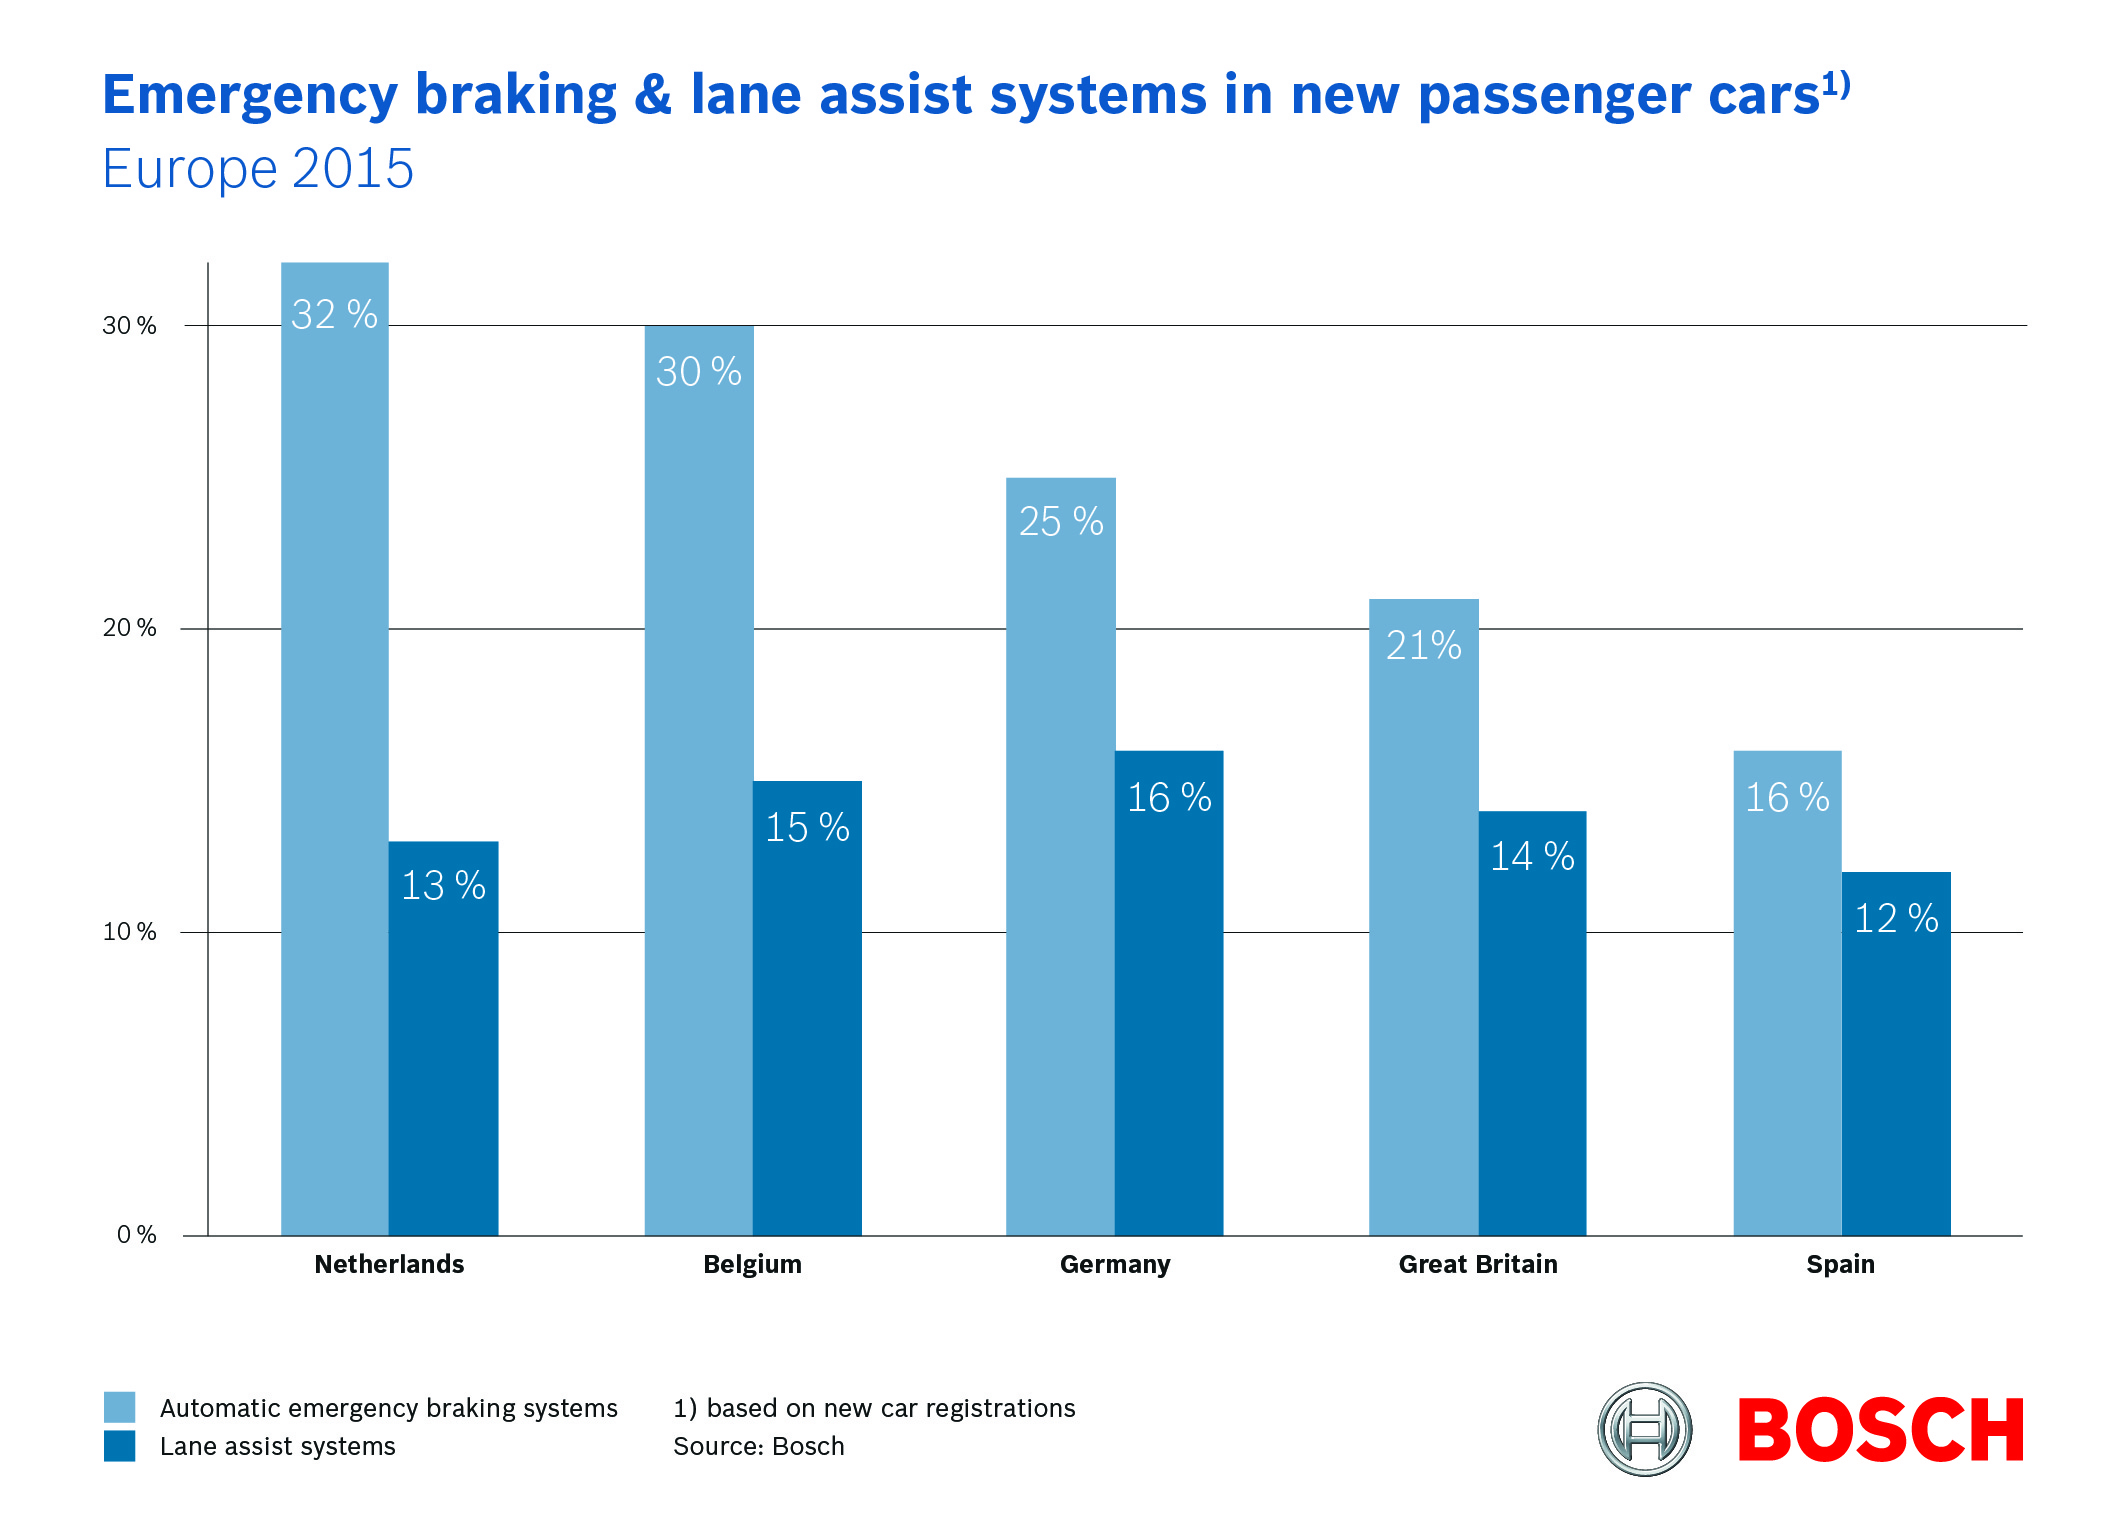 Emergency braking & lane assist system in new passenger cars